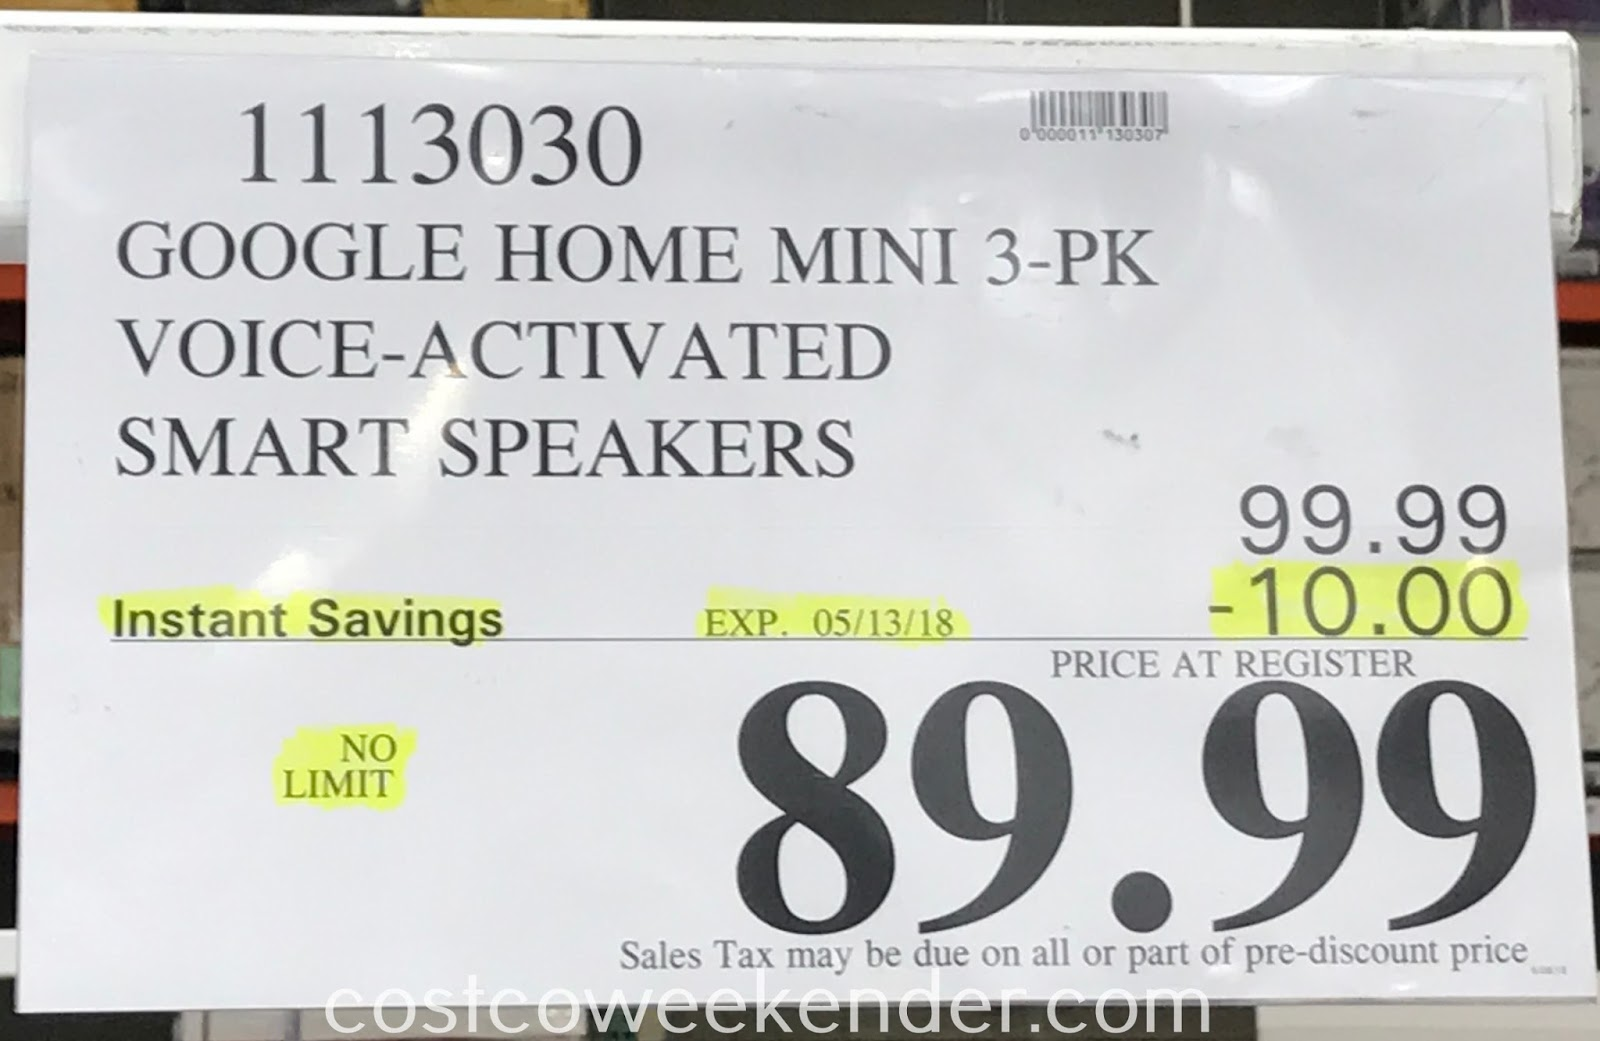 Deal for a 3 pack of Google Home Mini Voice Activated Smart Speakers at Costco